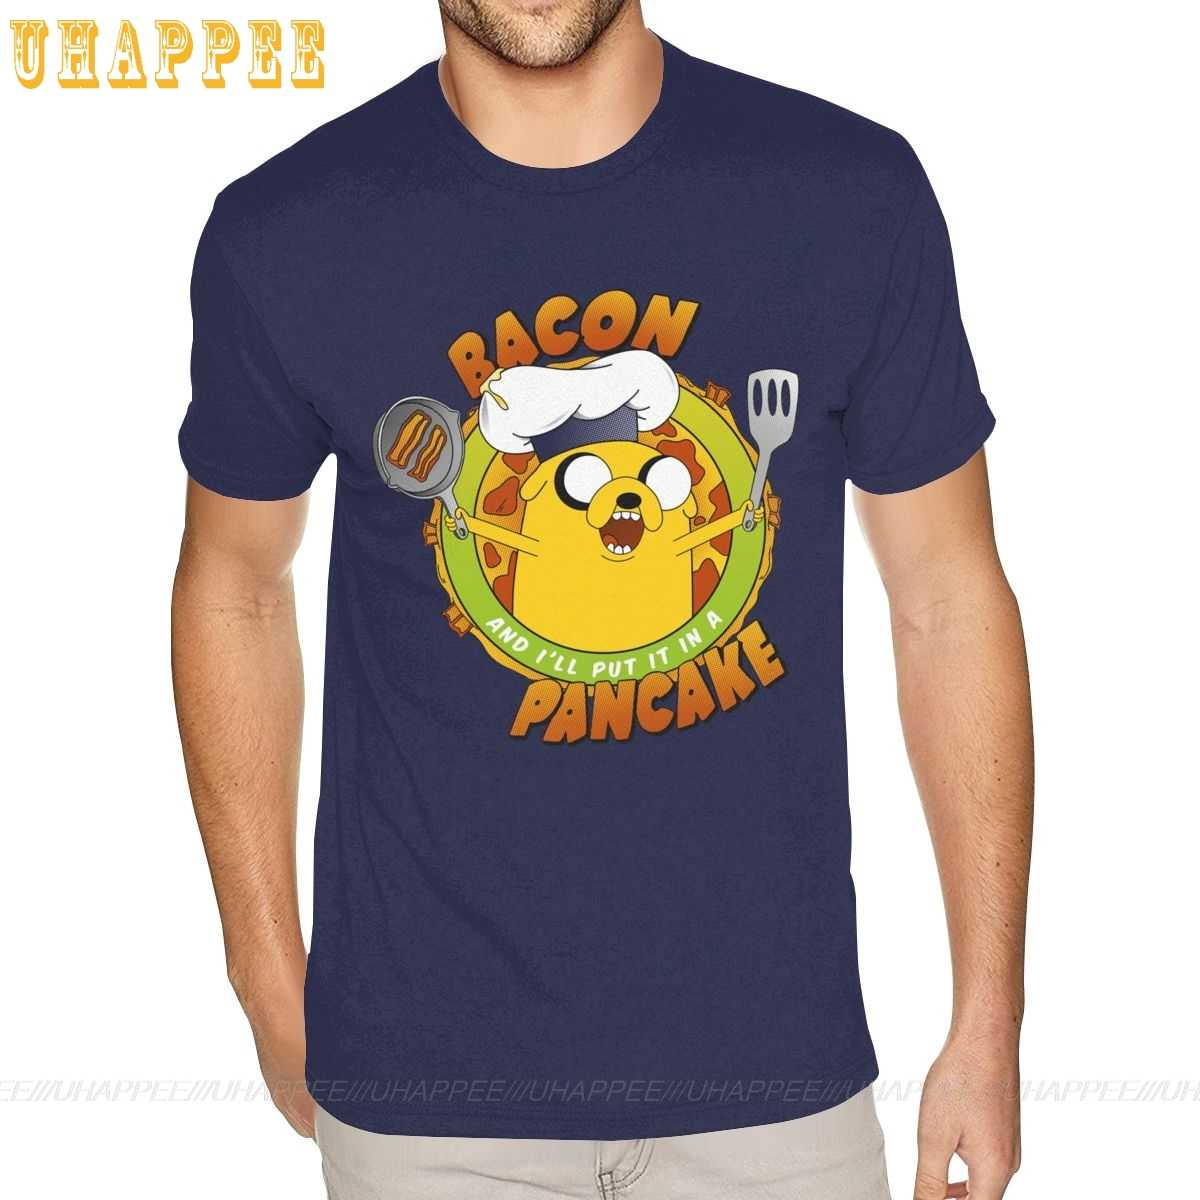 Bacon Pancakes Womens /& Kids T-Shirt Novelty Gift Adventure Time Funny Geek TV